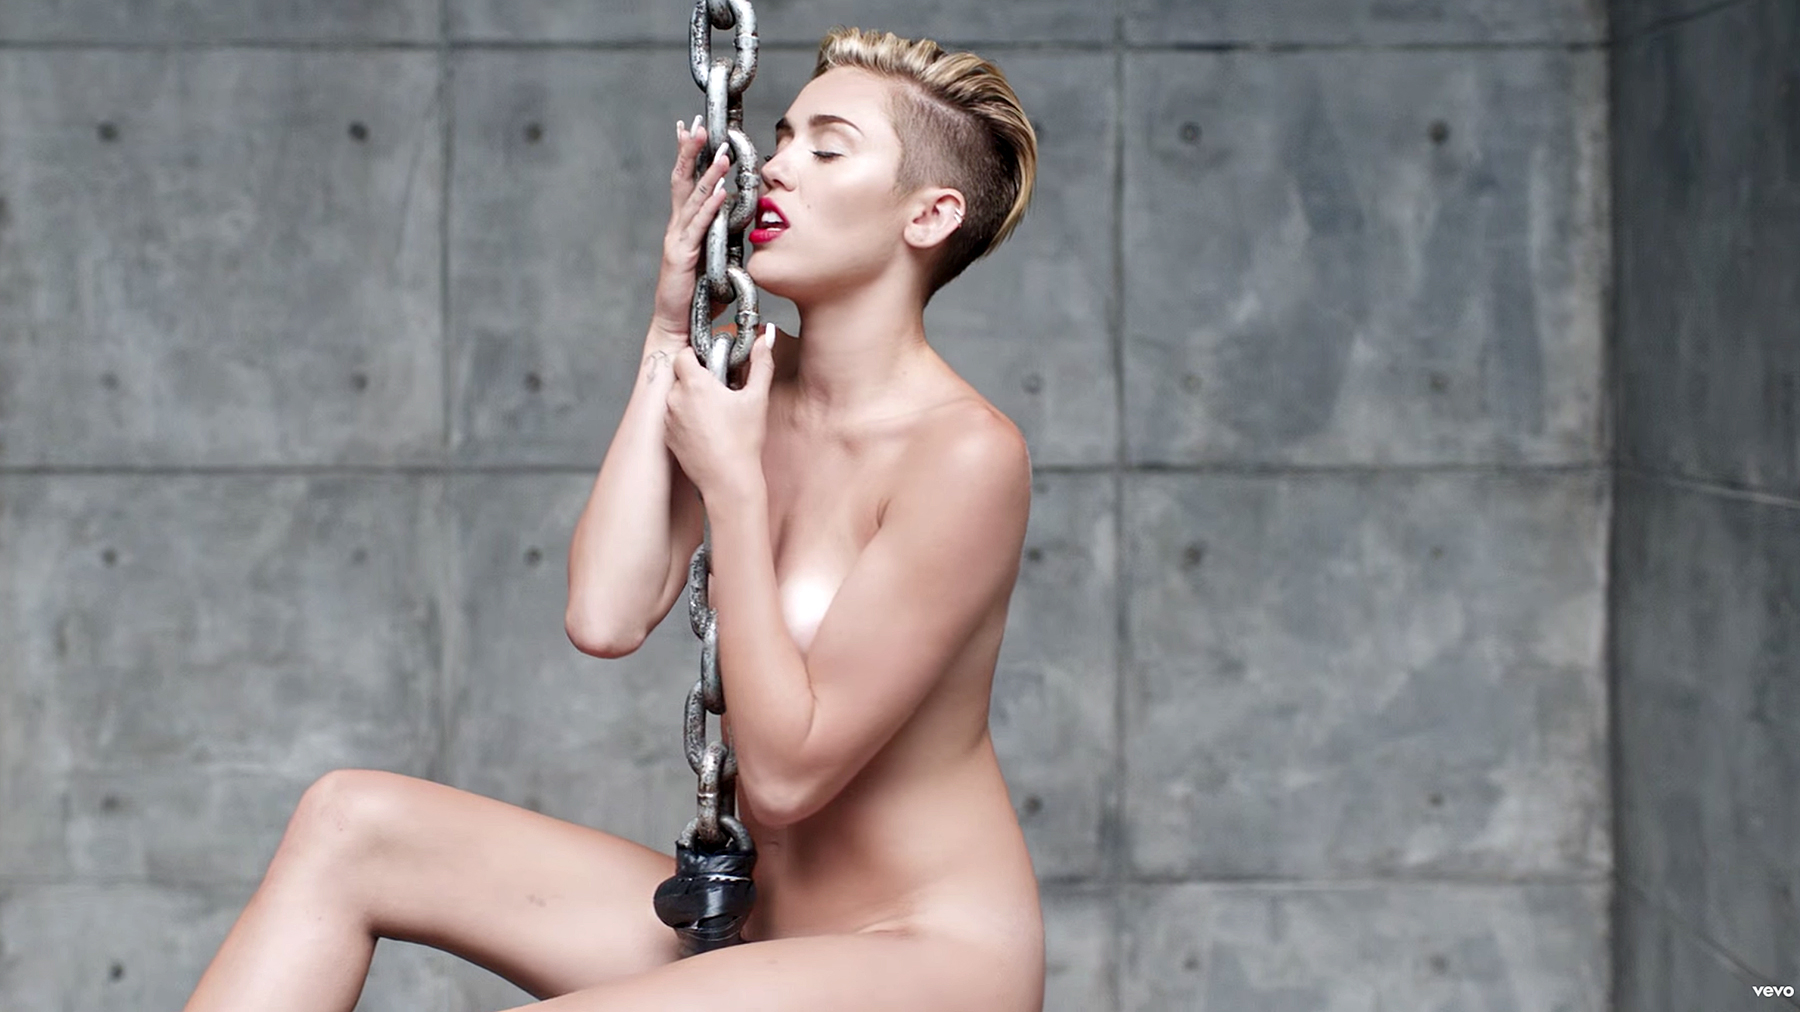 cyrus bad miley nude